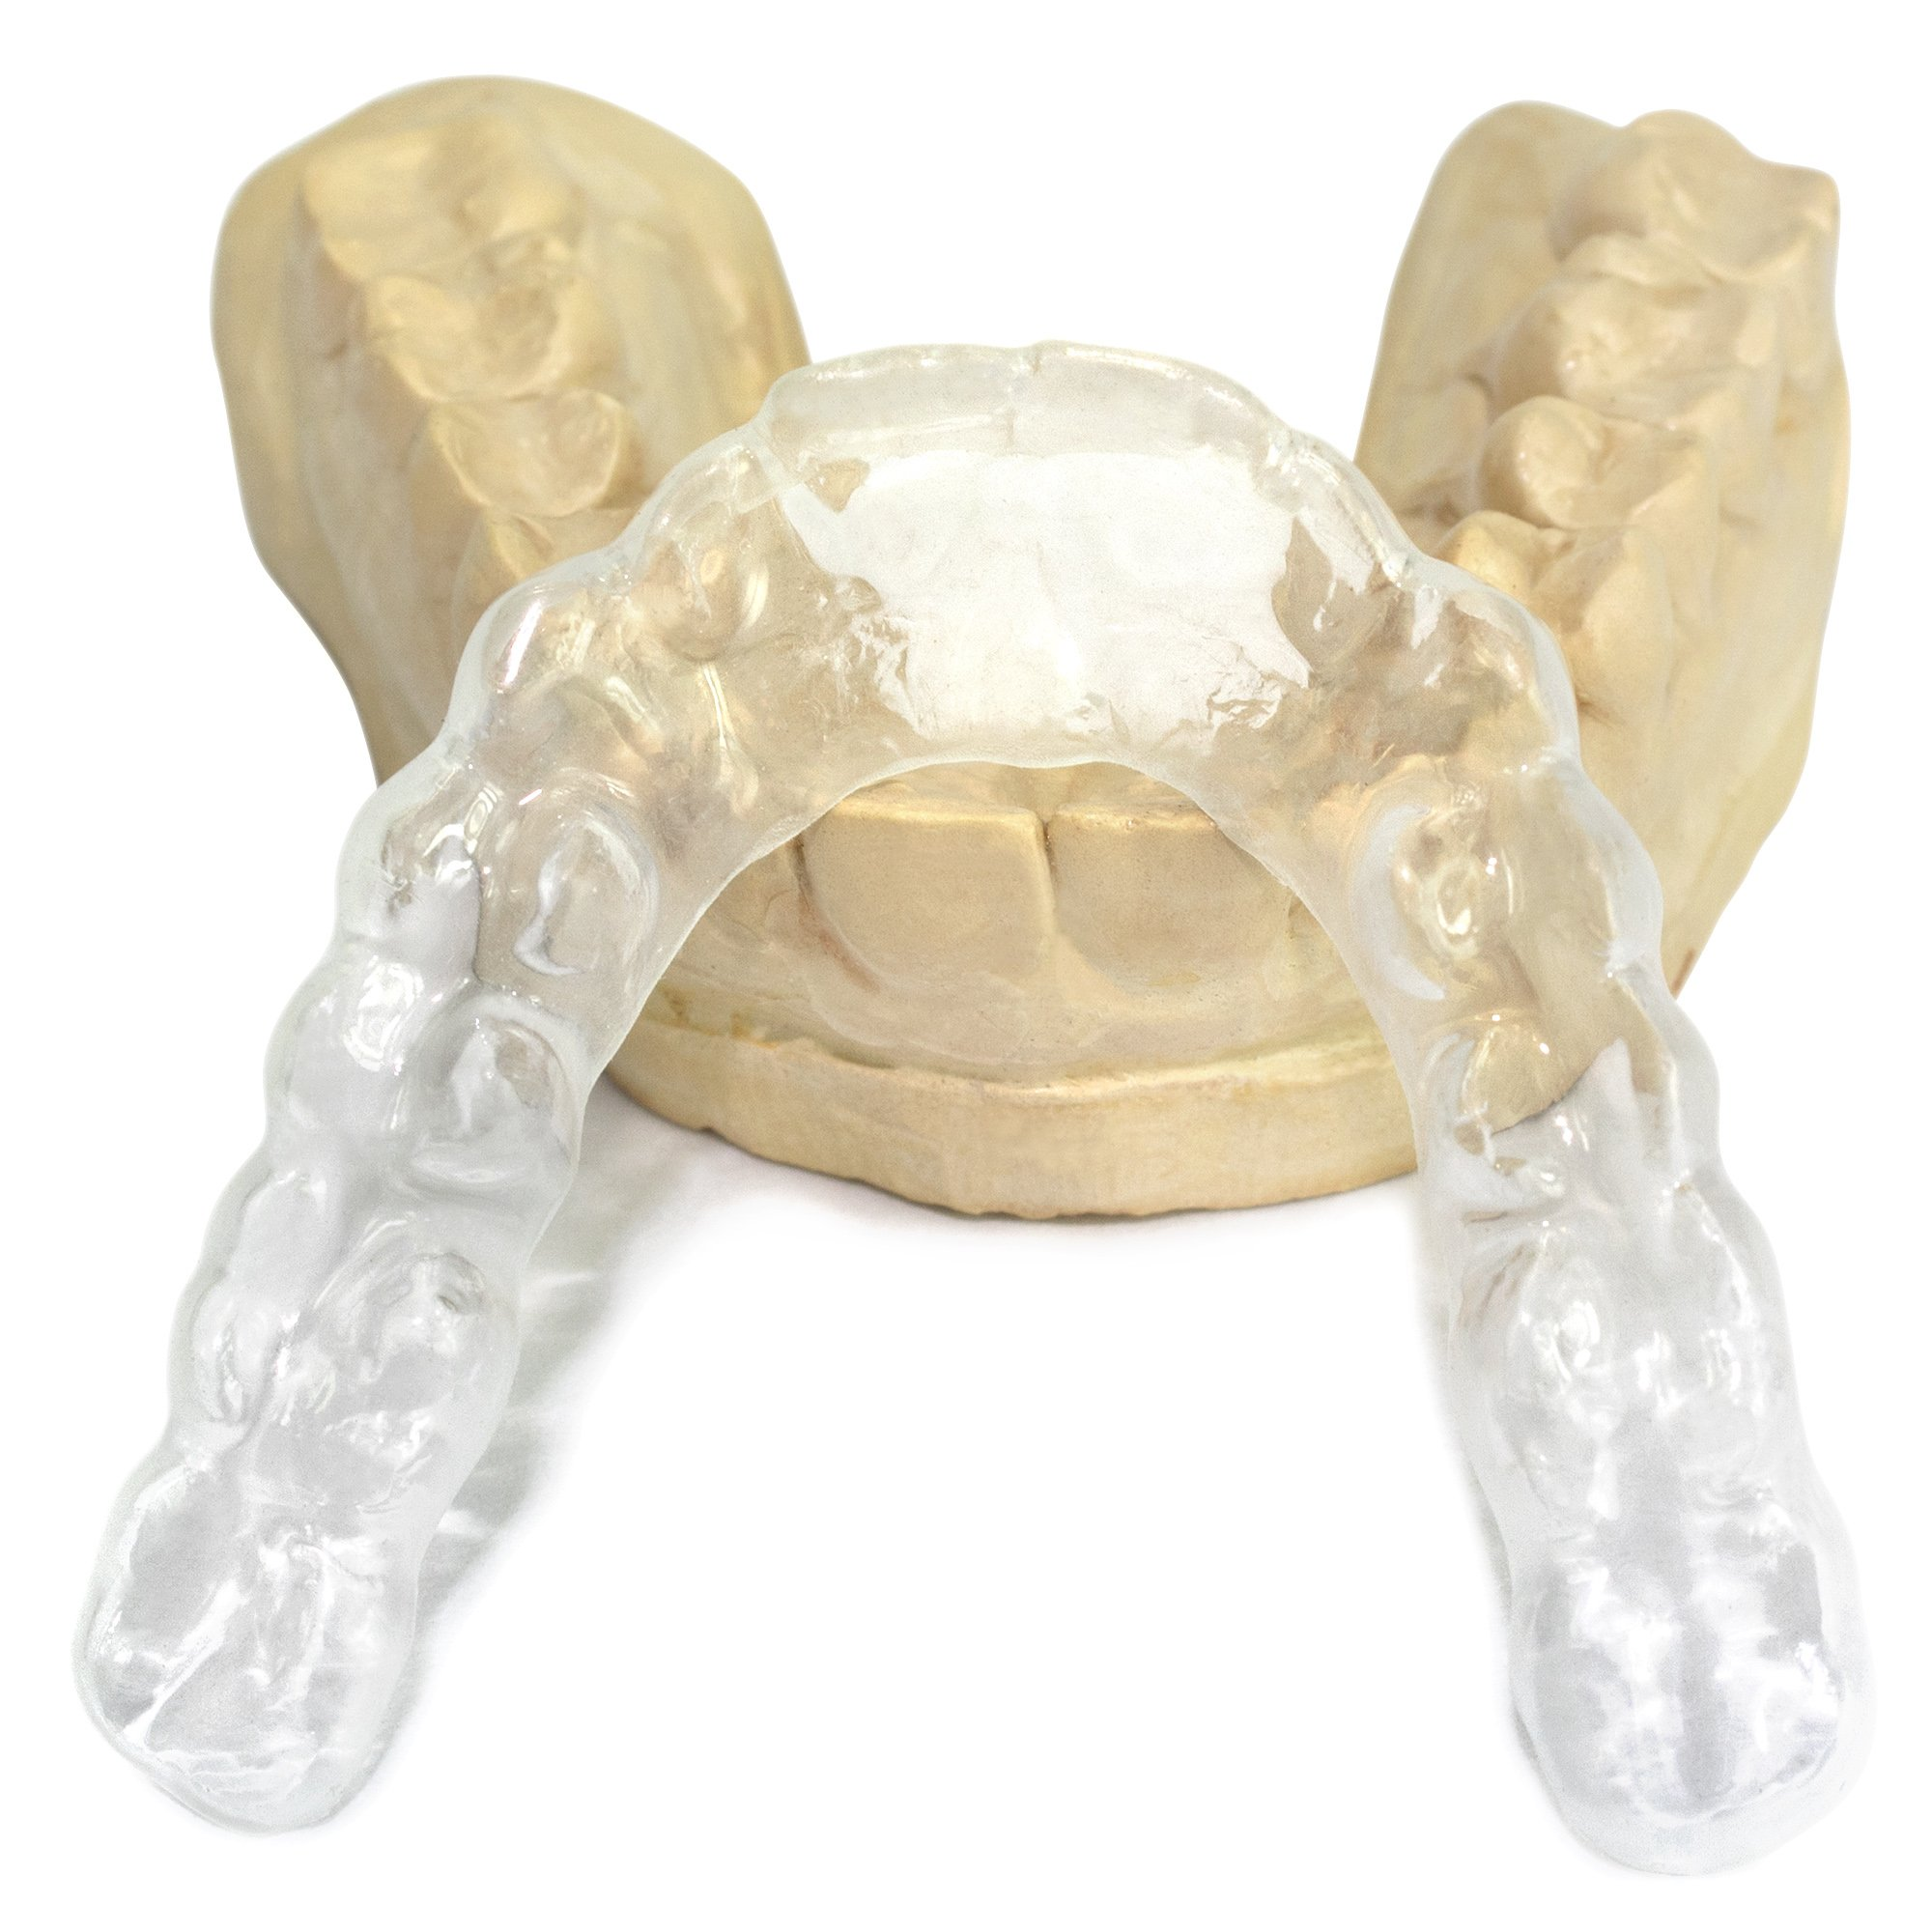 P & J Health Custom Mouth Guard for Teeth Grinding & Bruxism (Upper, Transparent)